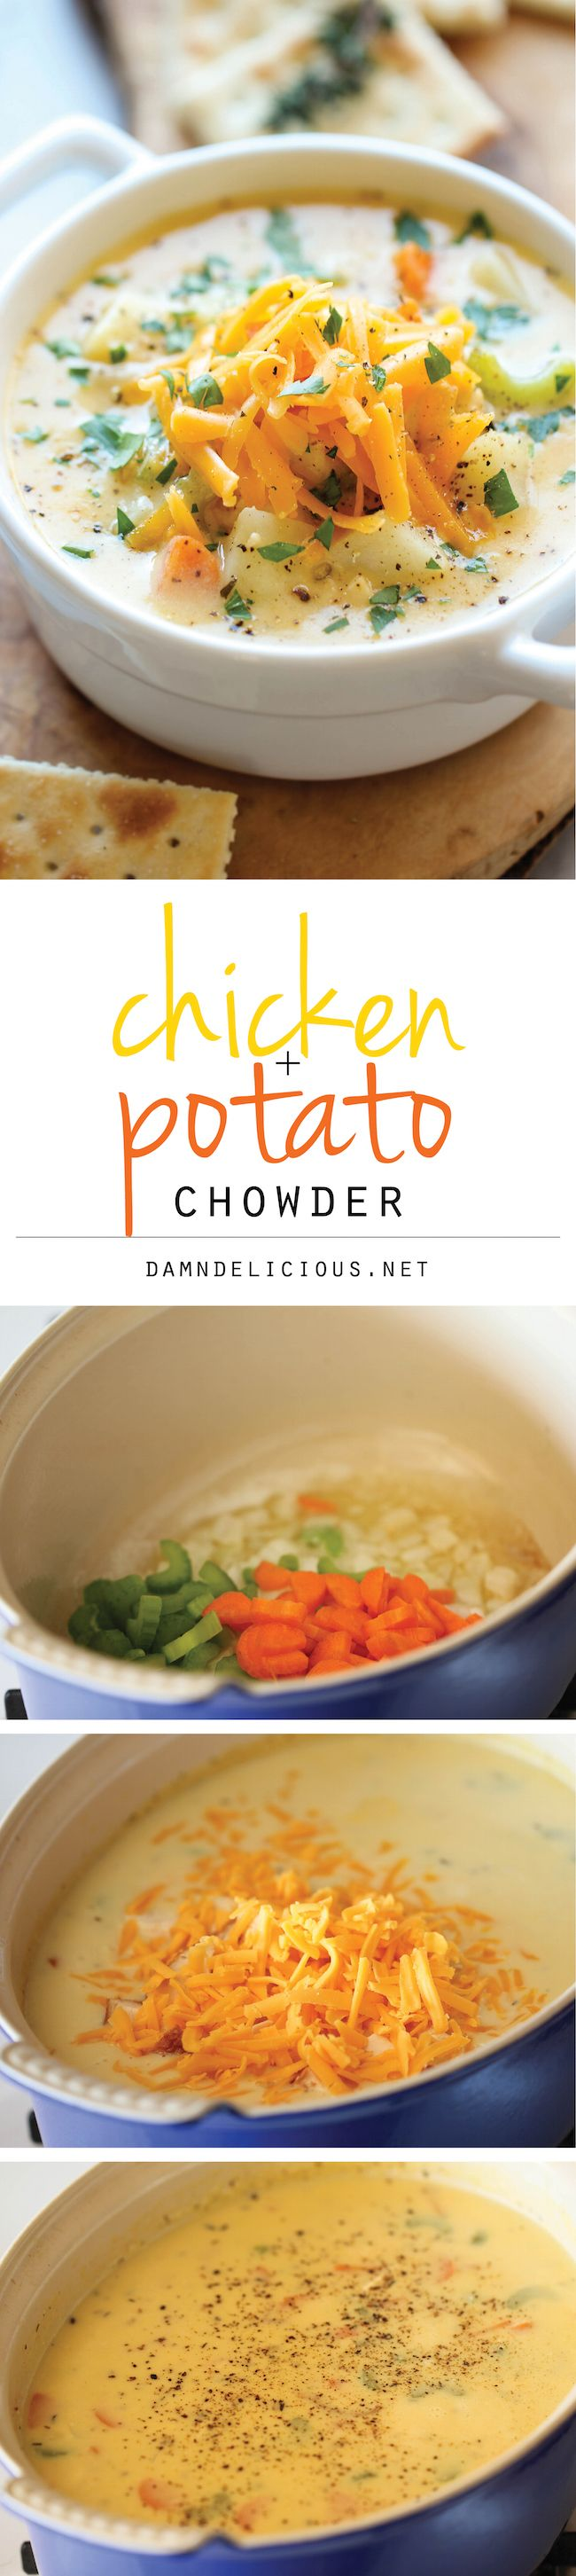 Chicken and Potato Chowder - Just like mom's comforting chicken noodle soup, but it's even creamier and loaded with cheesy goodness!